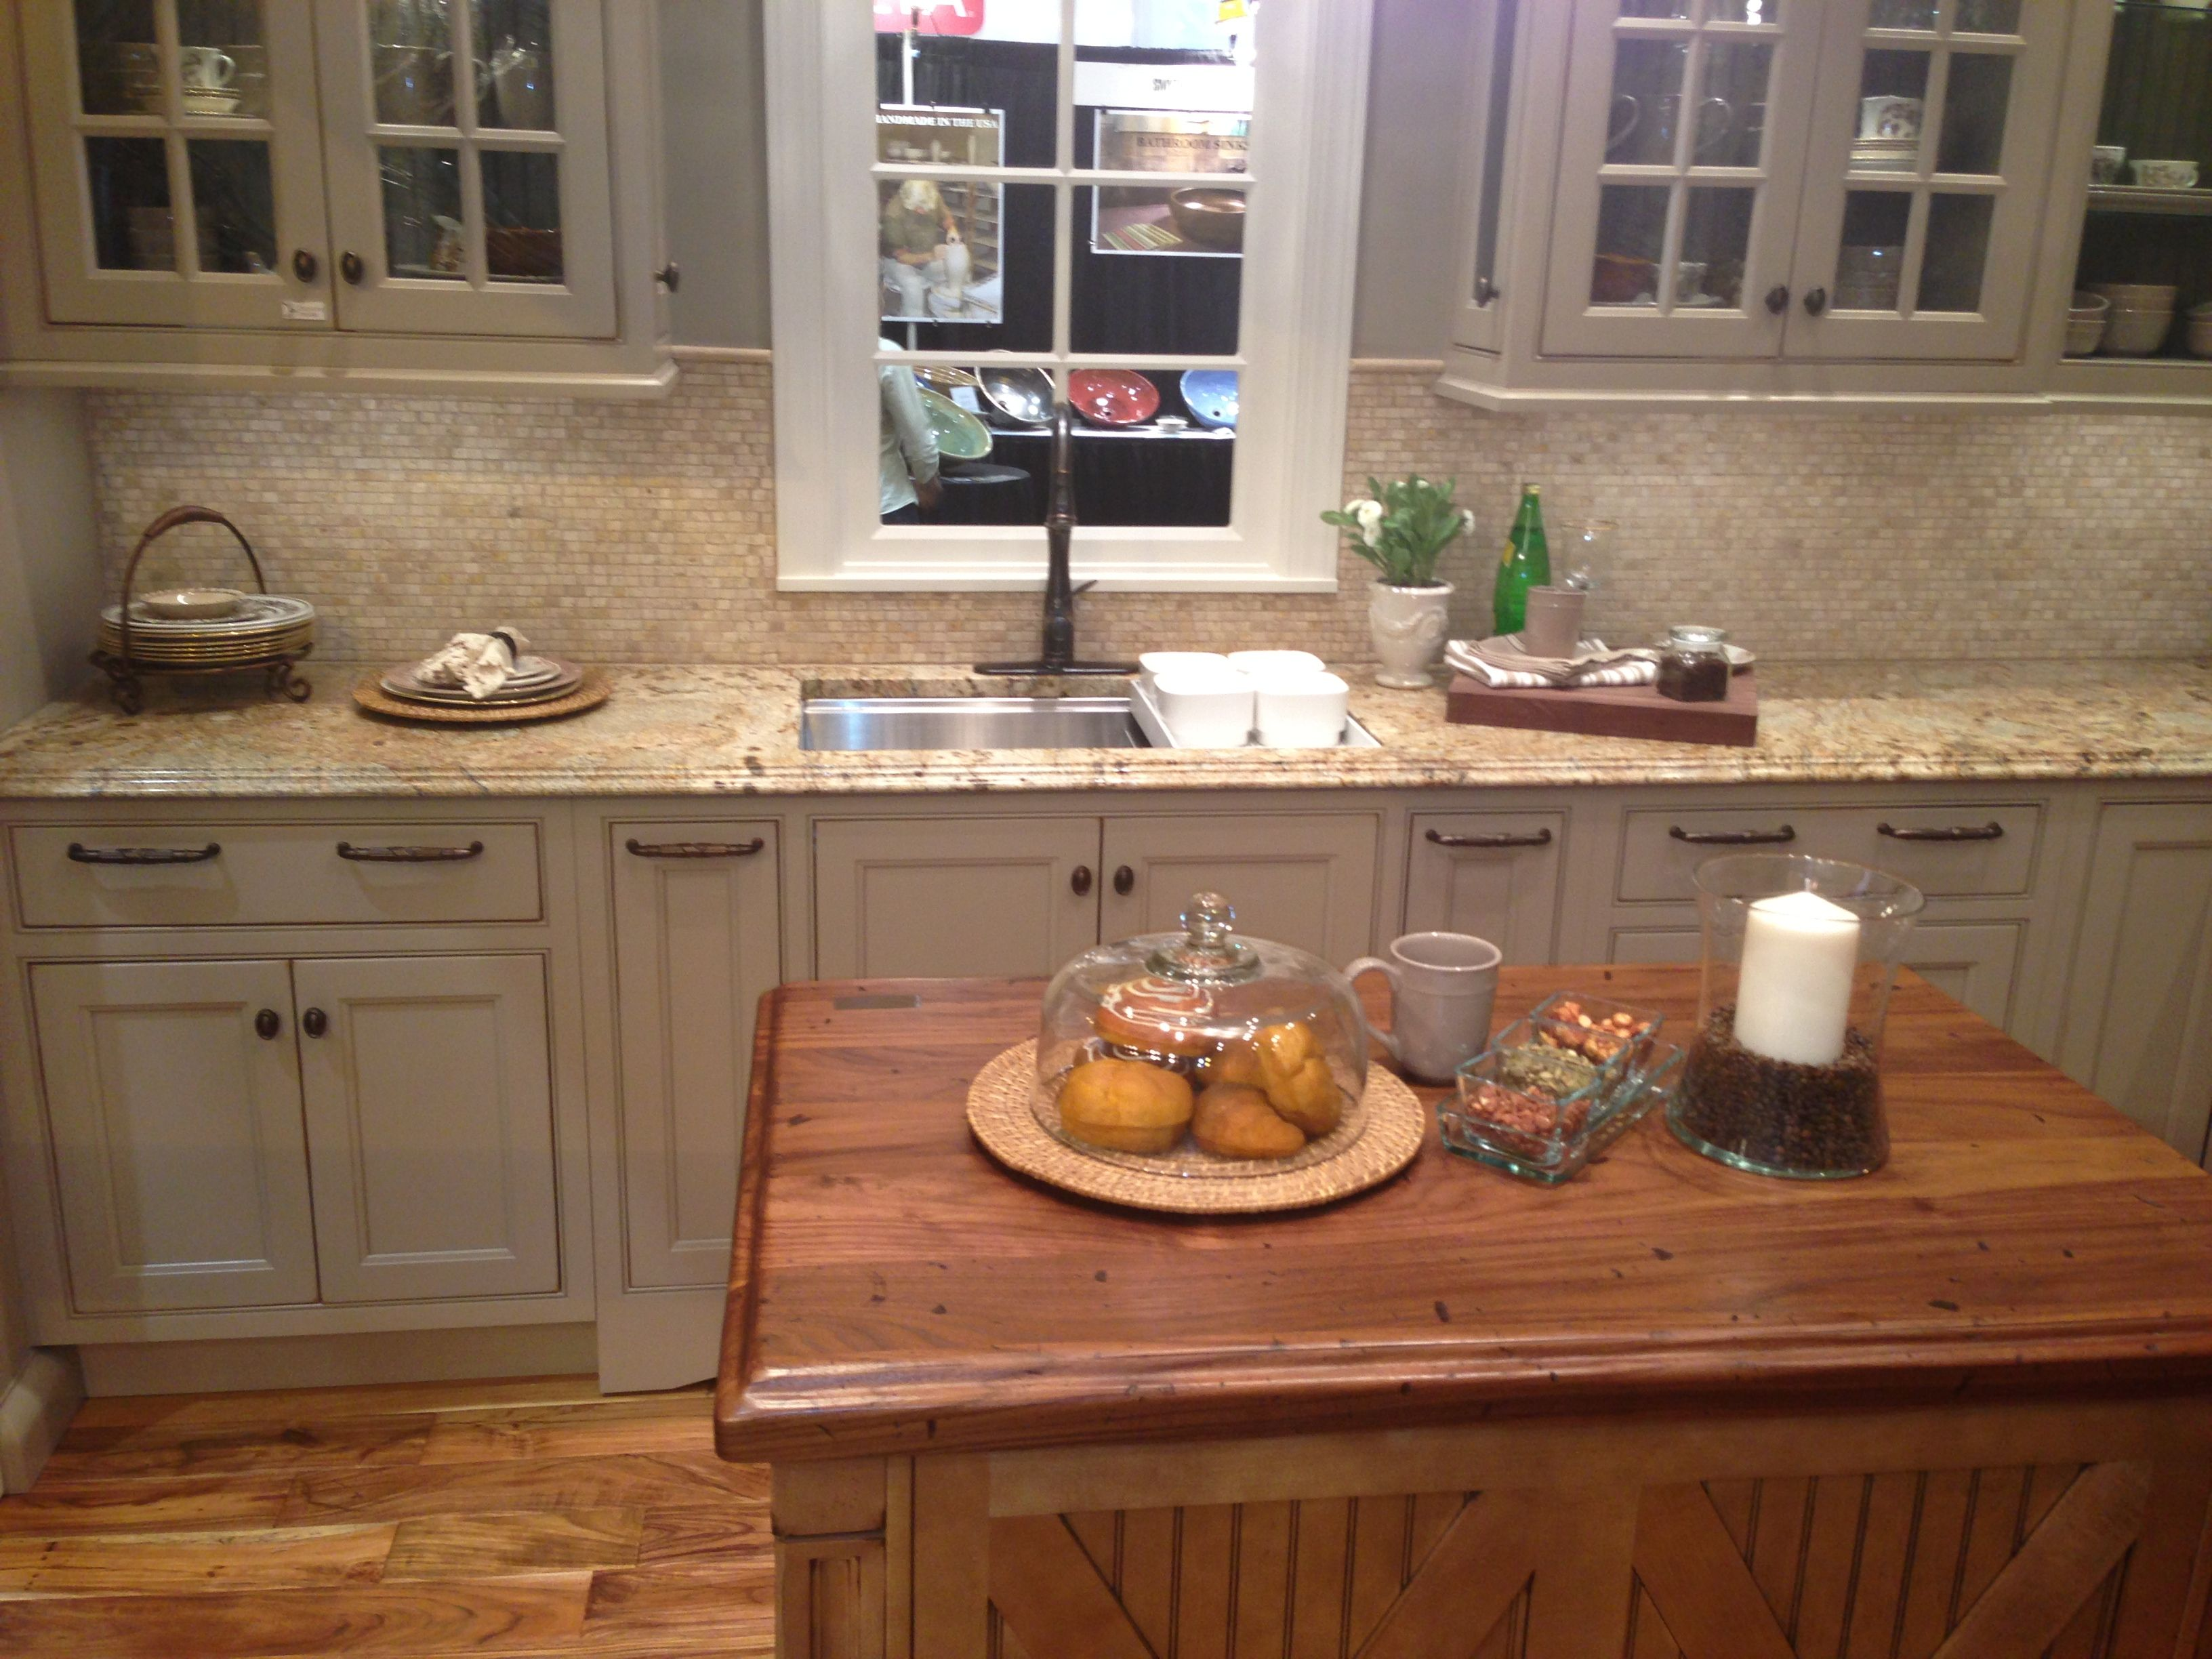 Heritage Wood Island From @Artisan Stone Collection Countertops At The @Wellborn  Cabinet Inc.